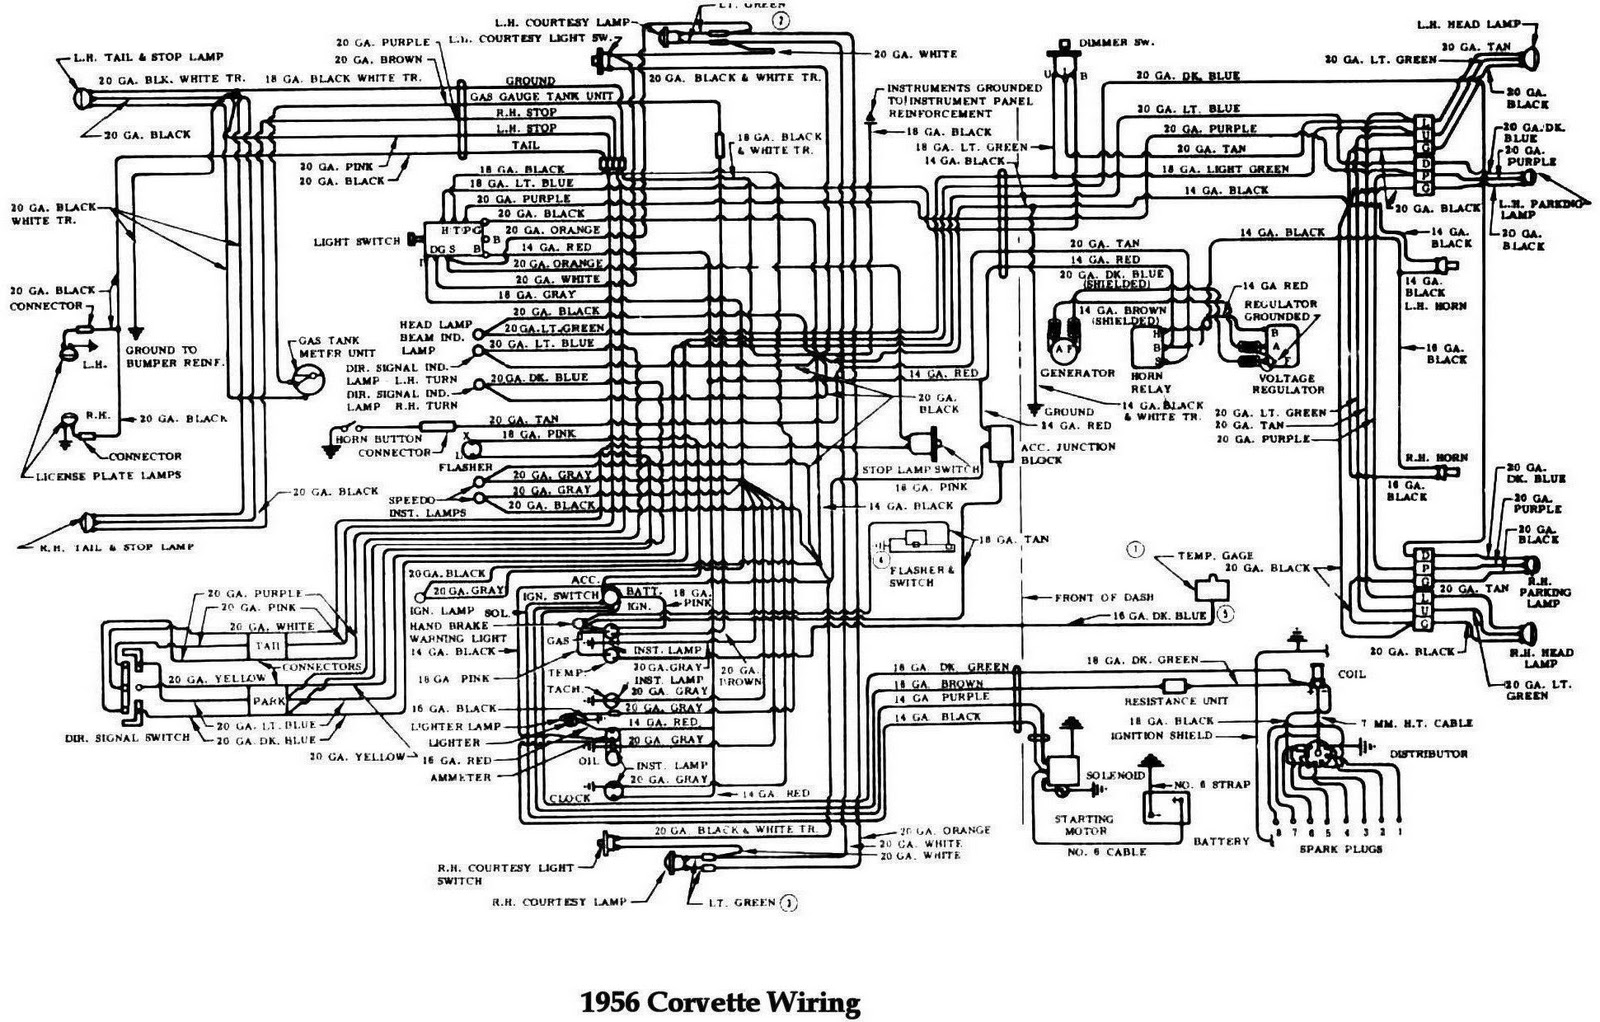 1984 Chevy Truck Wiring Schematic Trusted Diagram For 1957 Chevrolet Corvette Diagrams U2022 Radio